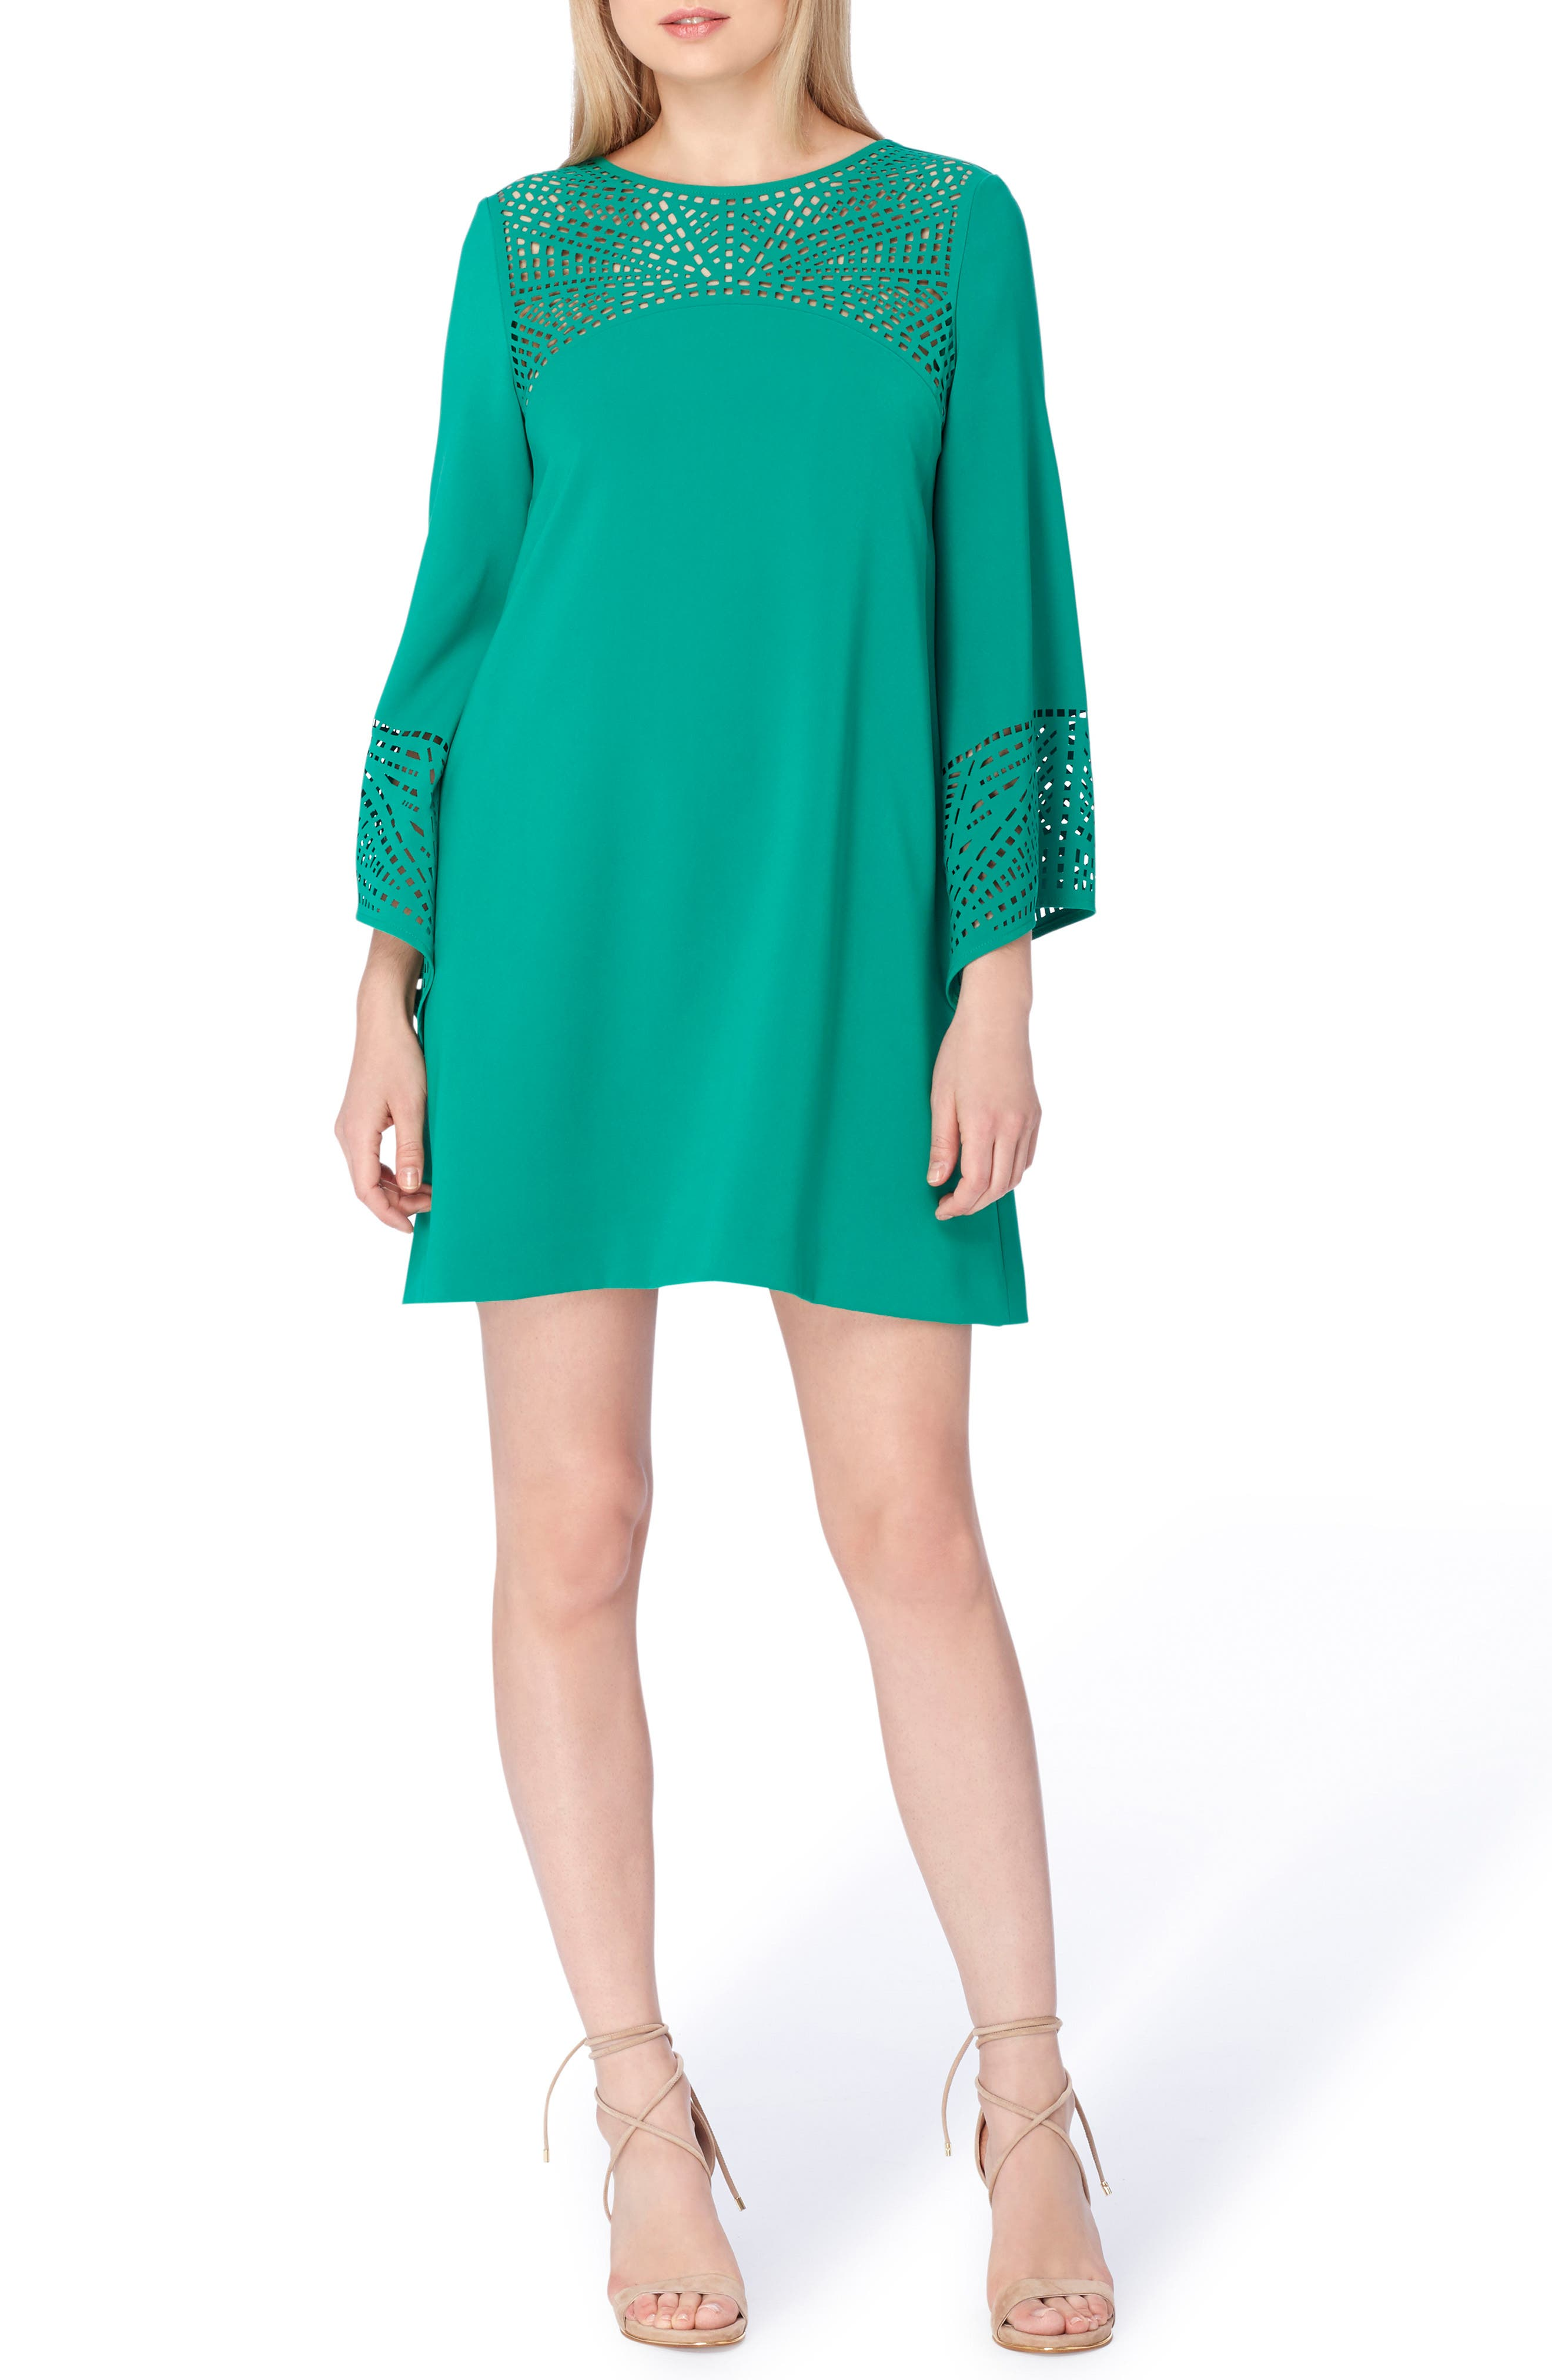 Alternate Image 1 Selected - Tahari Long Sleeve Shift Dress